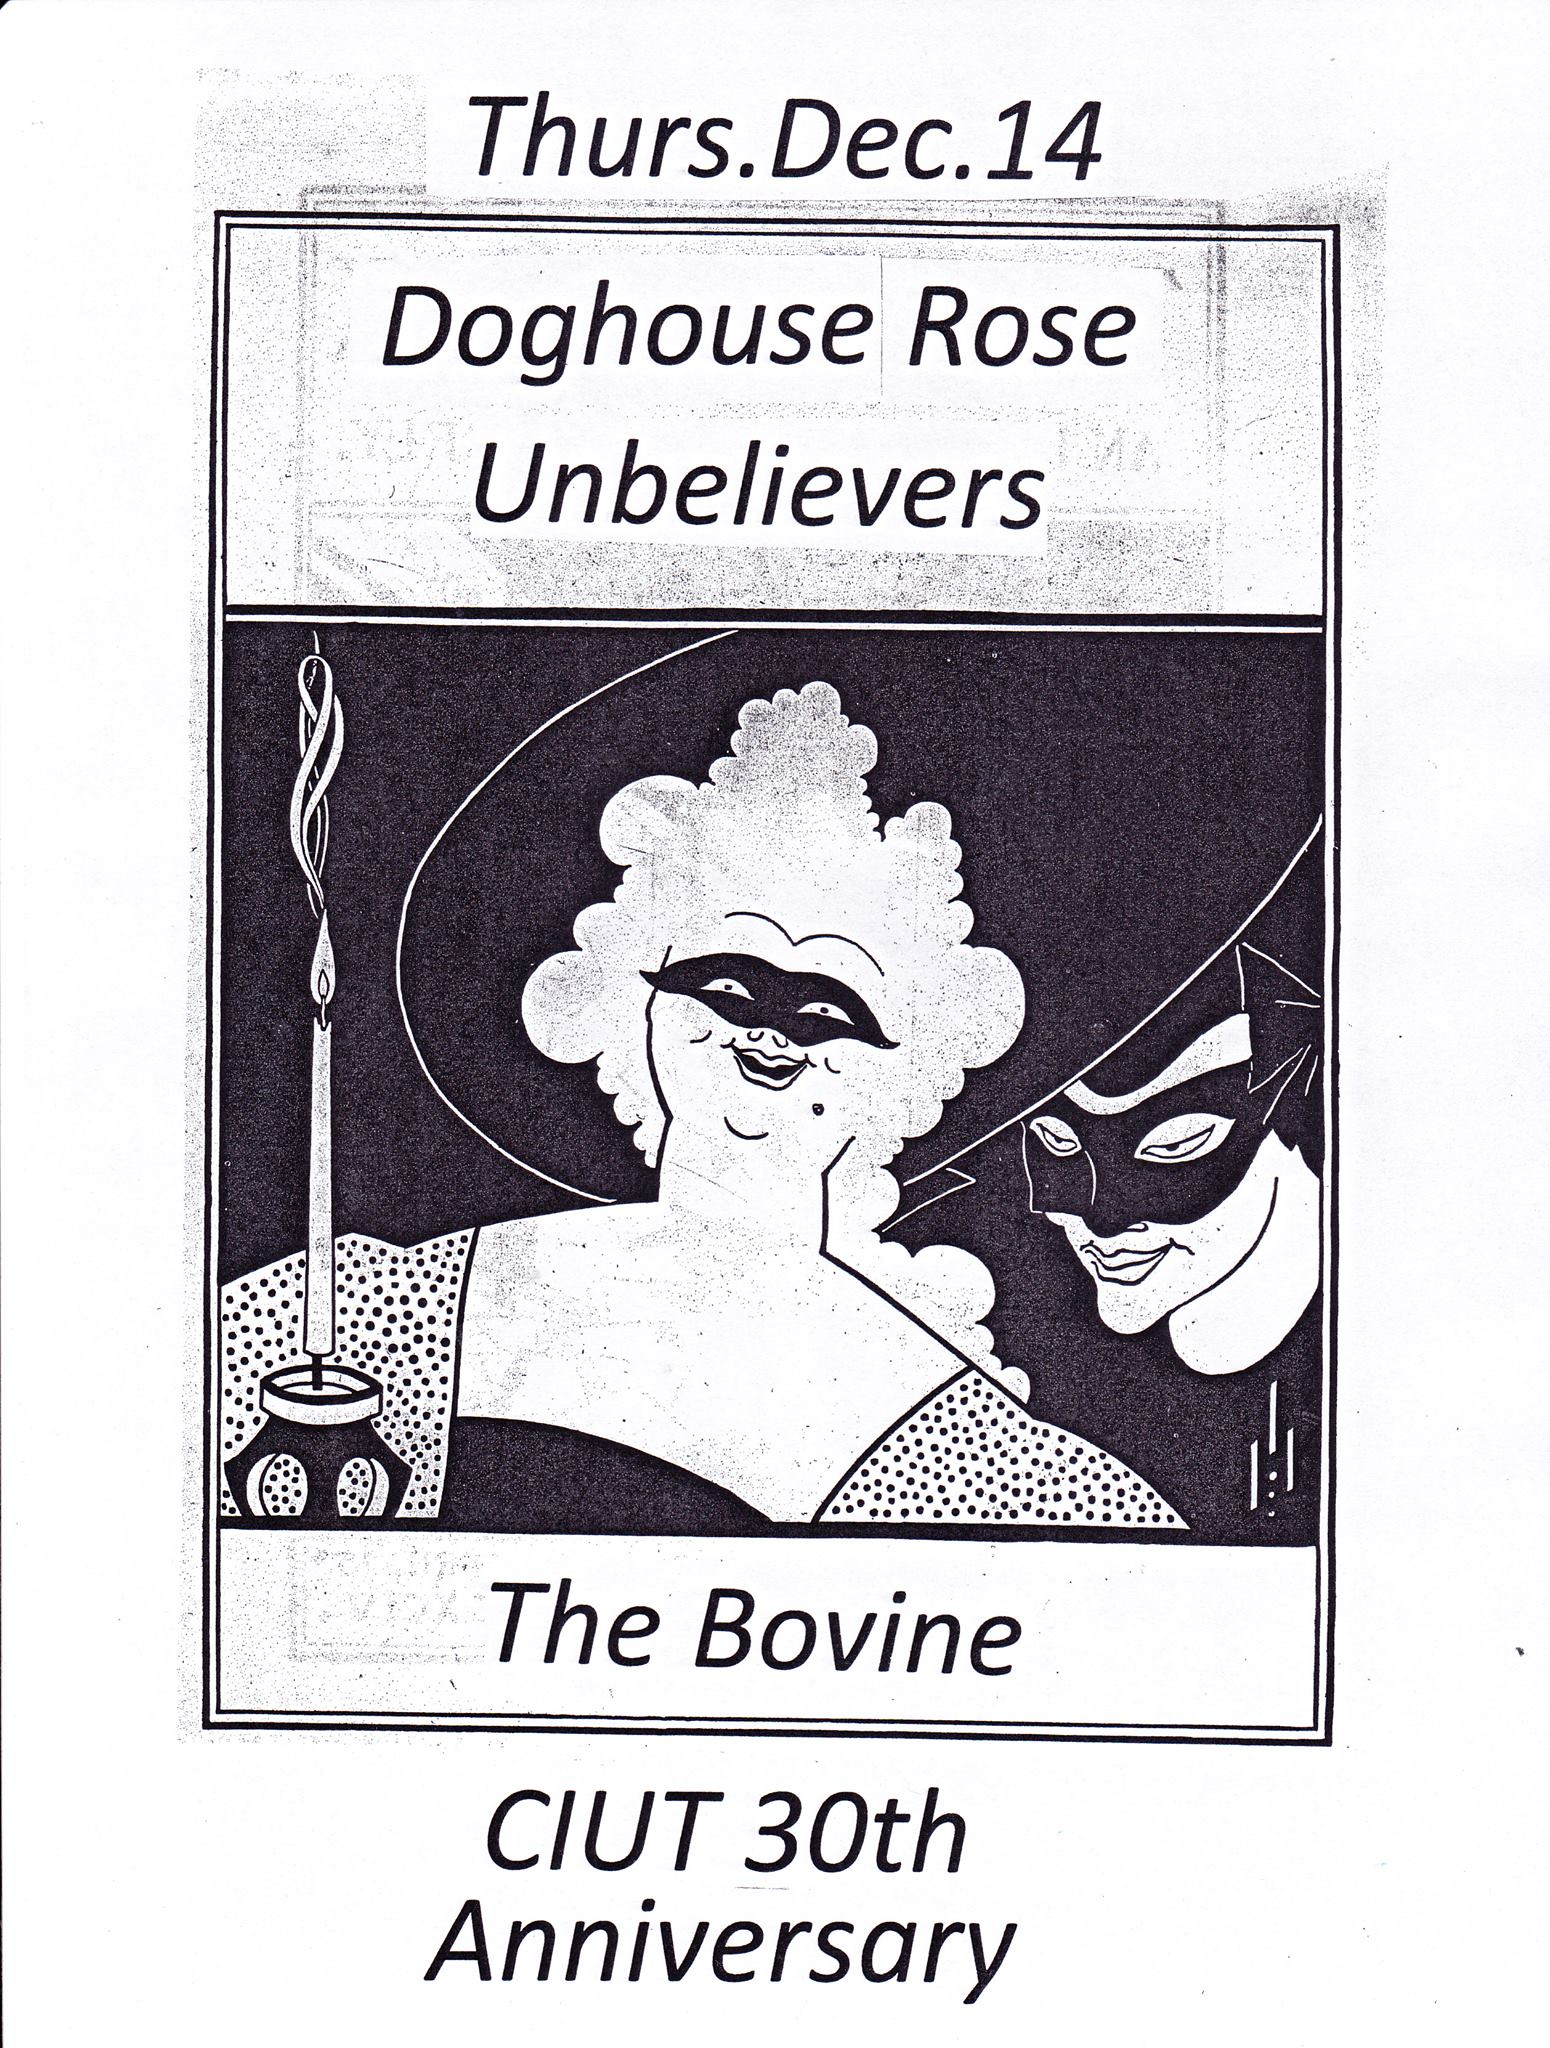 Doghouse Rose & Unbelievers at the Bovine